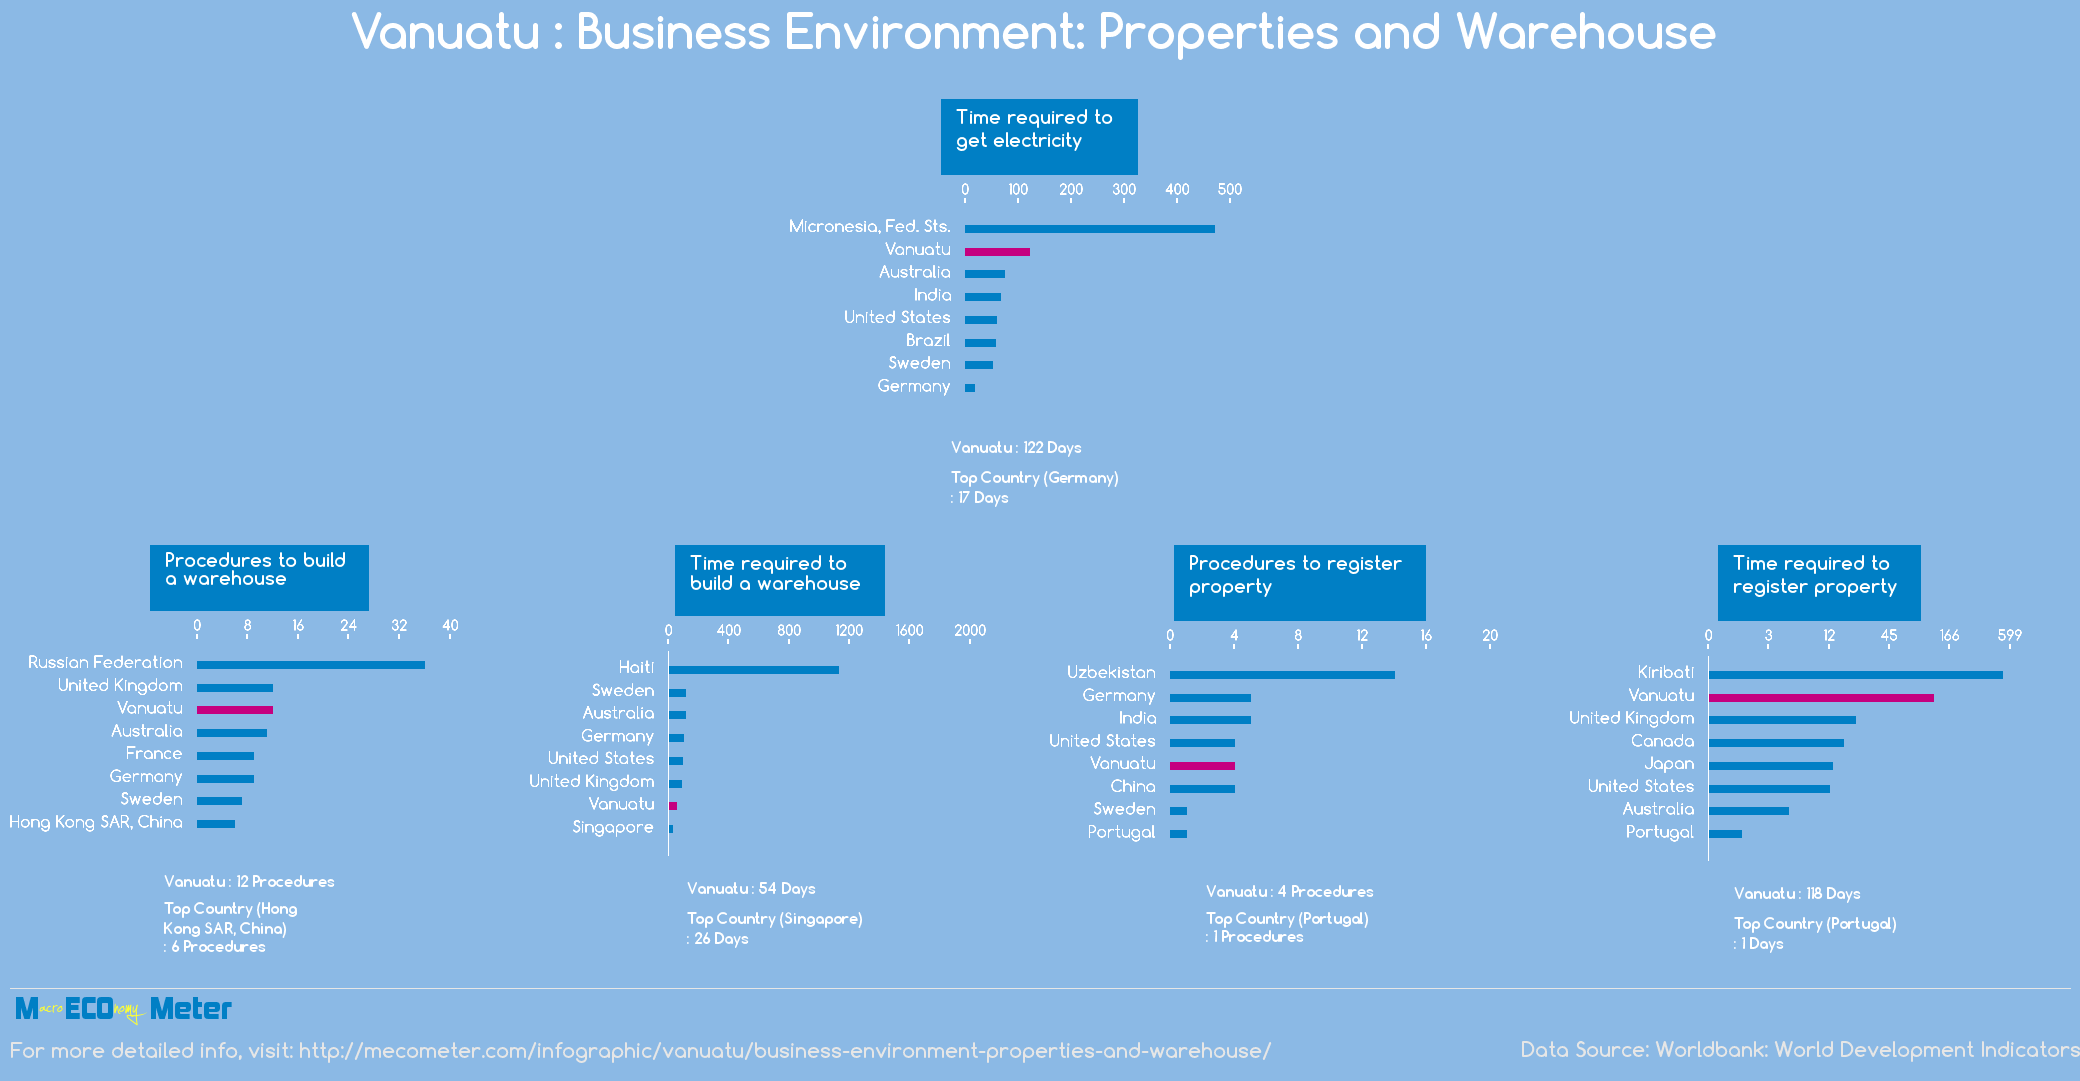 Vanuatu : Business Environment: Properties and Warehouse